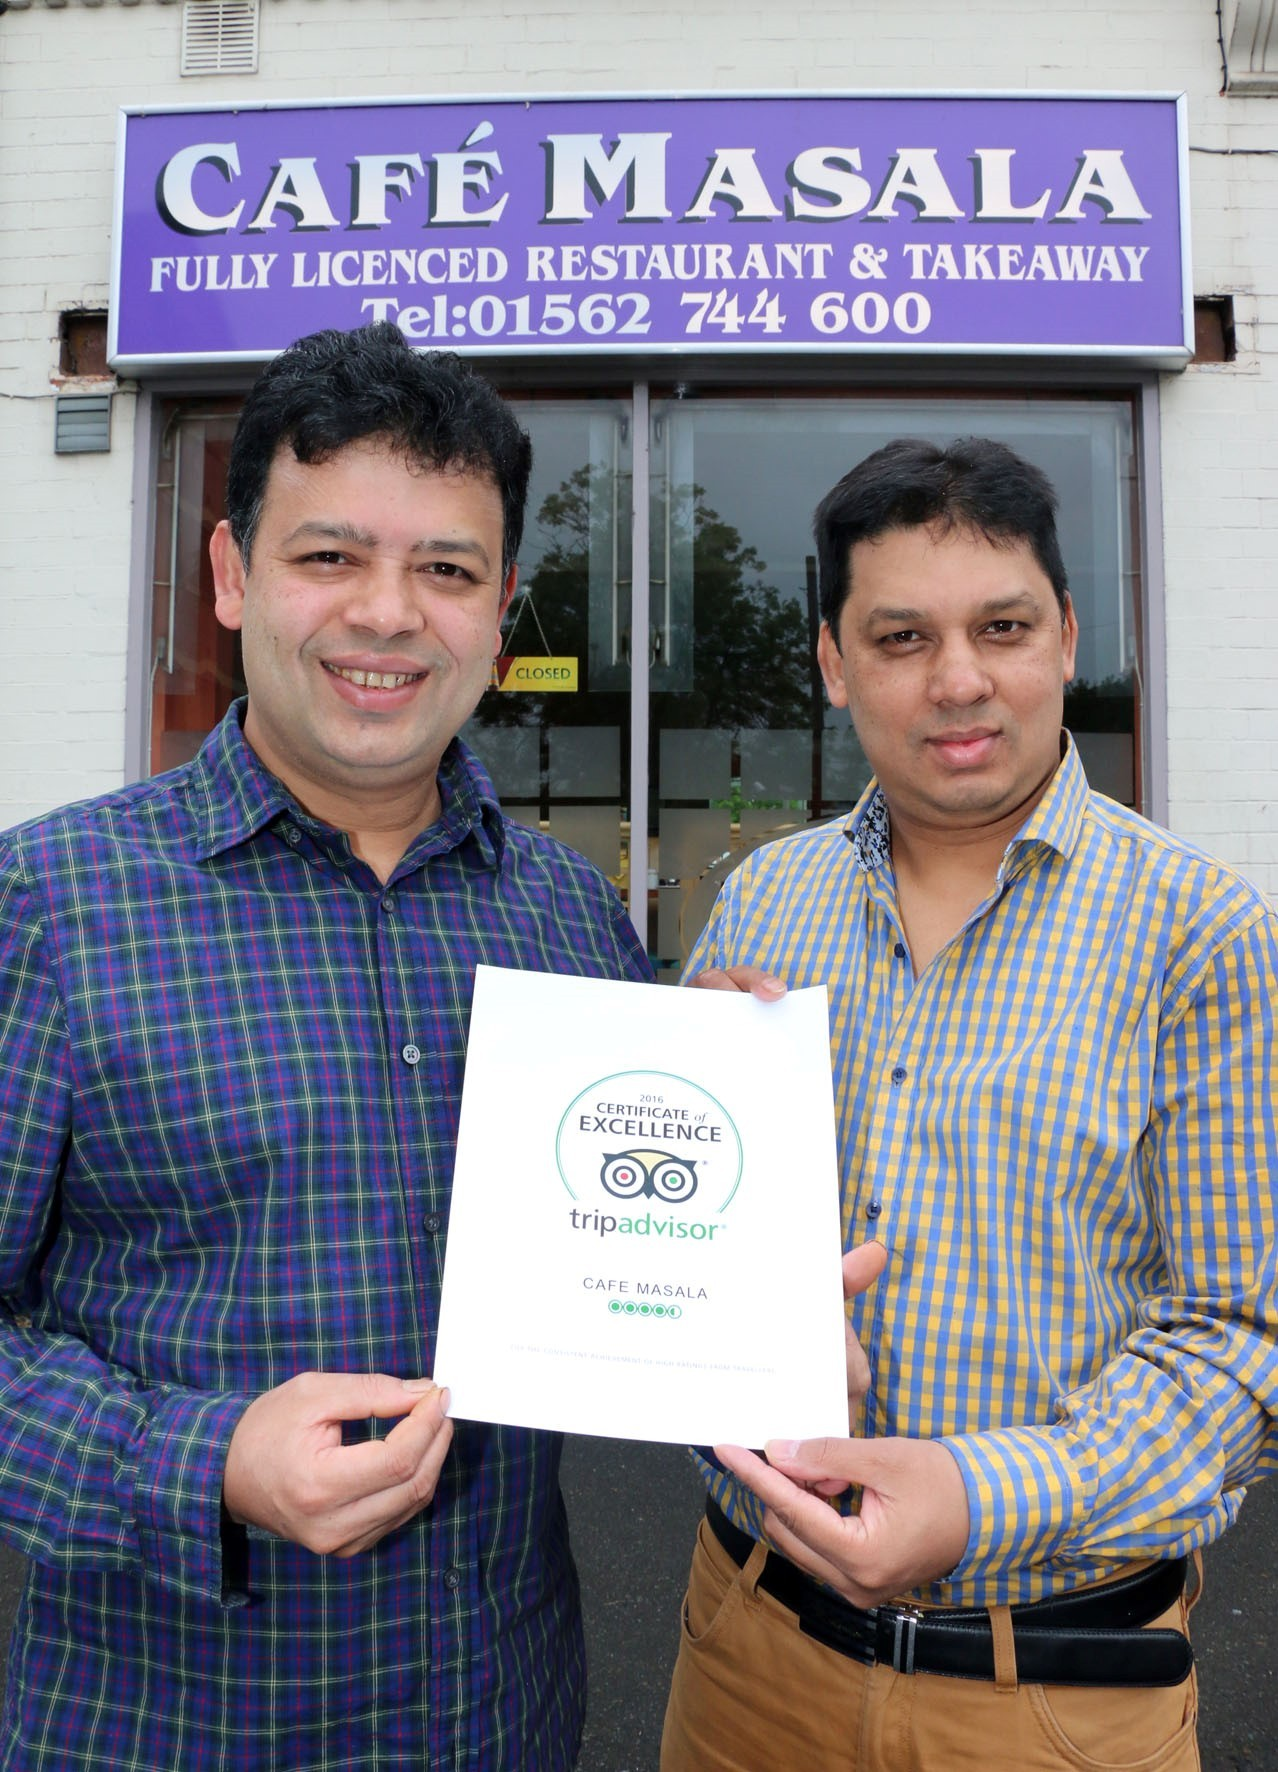 Mokbul Hussain and Hussain Moshahid from Cafe Masala, in Mill Street, Kidderminster, have been awarded a Certificate of Excellence from TripAdvisor for the second year running